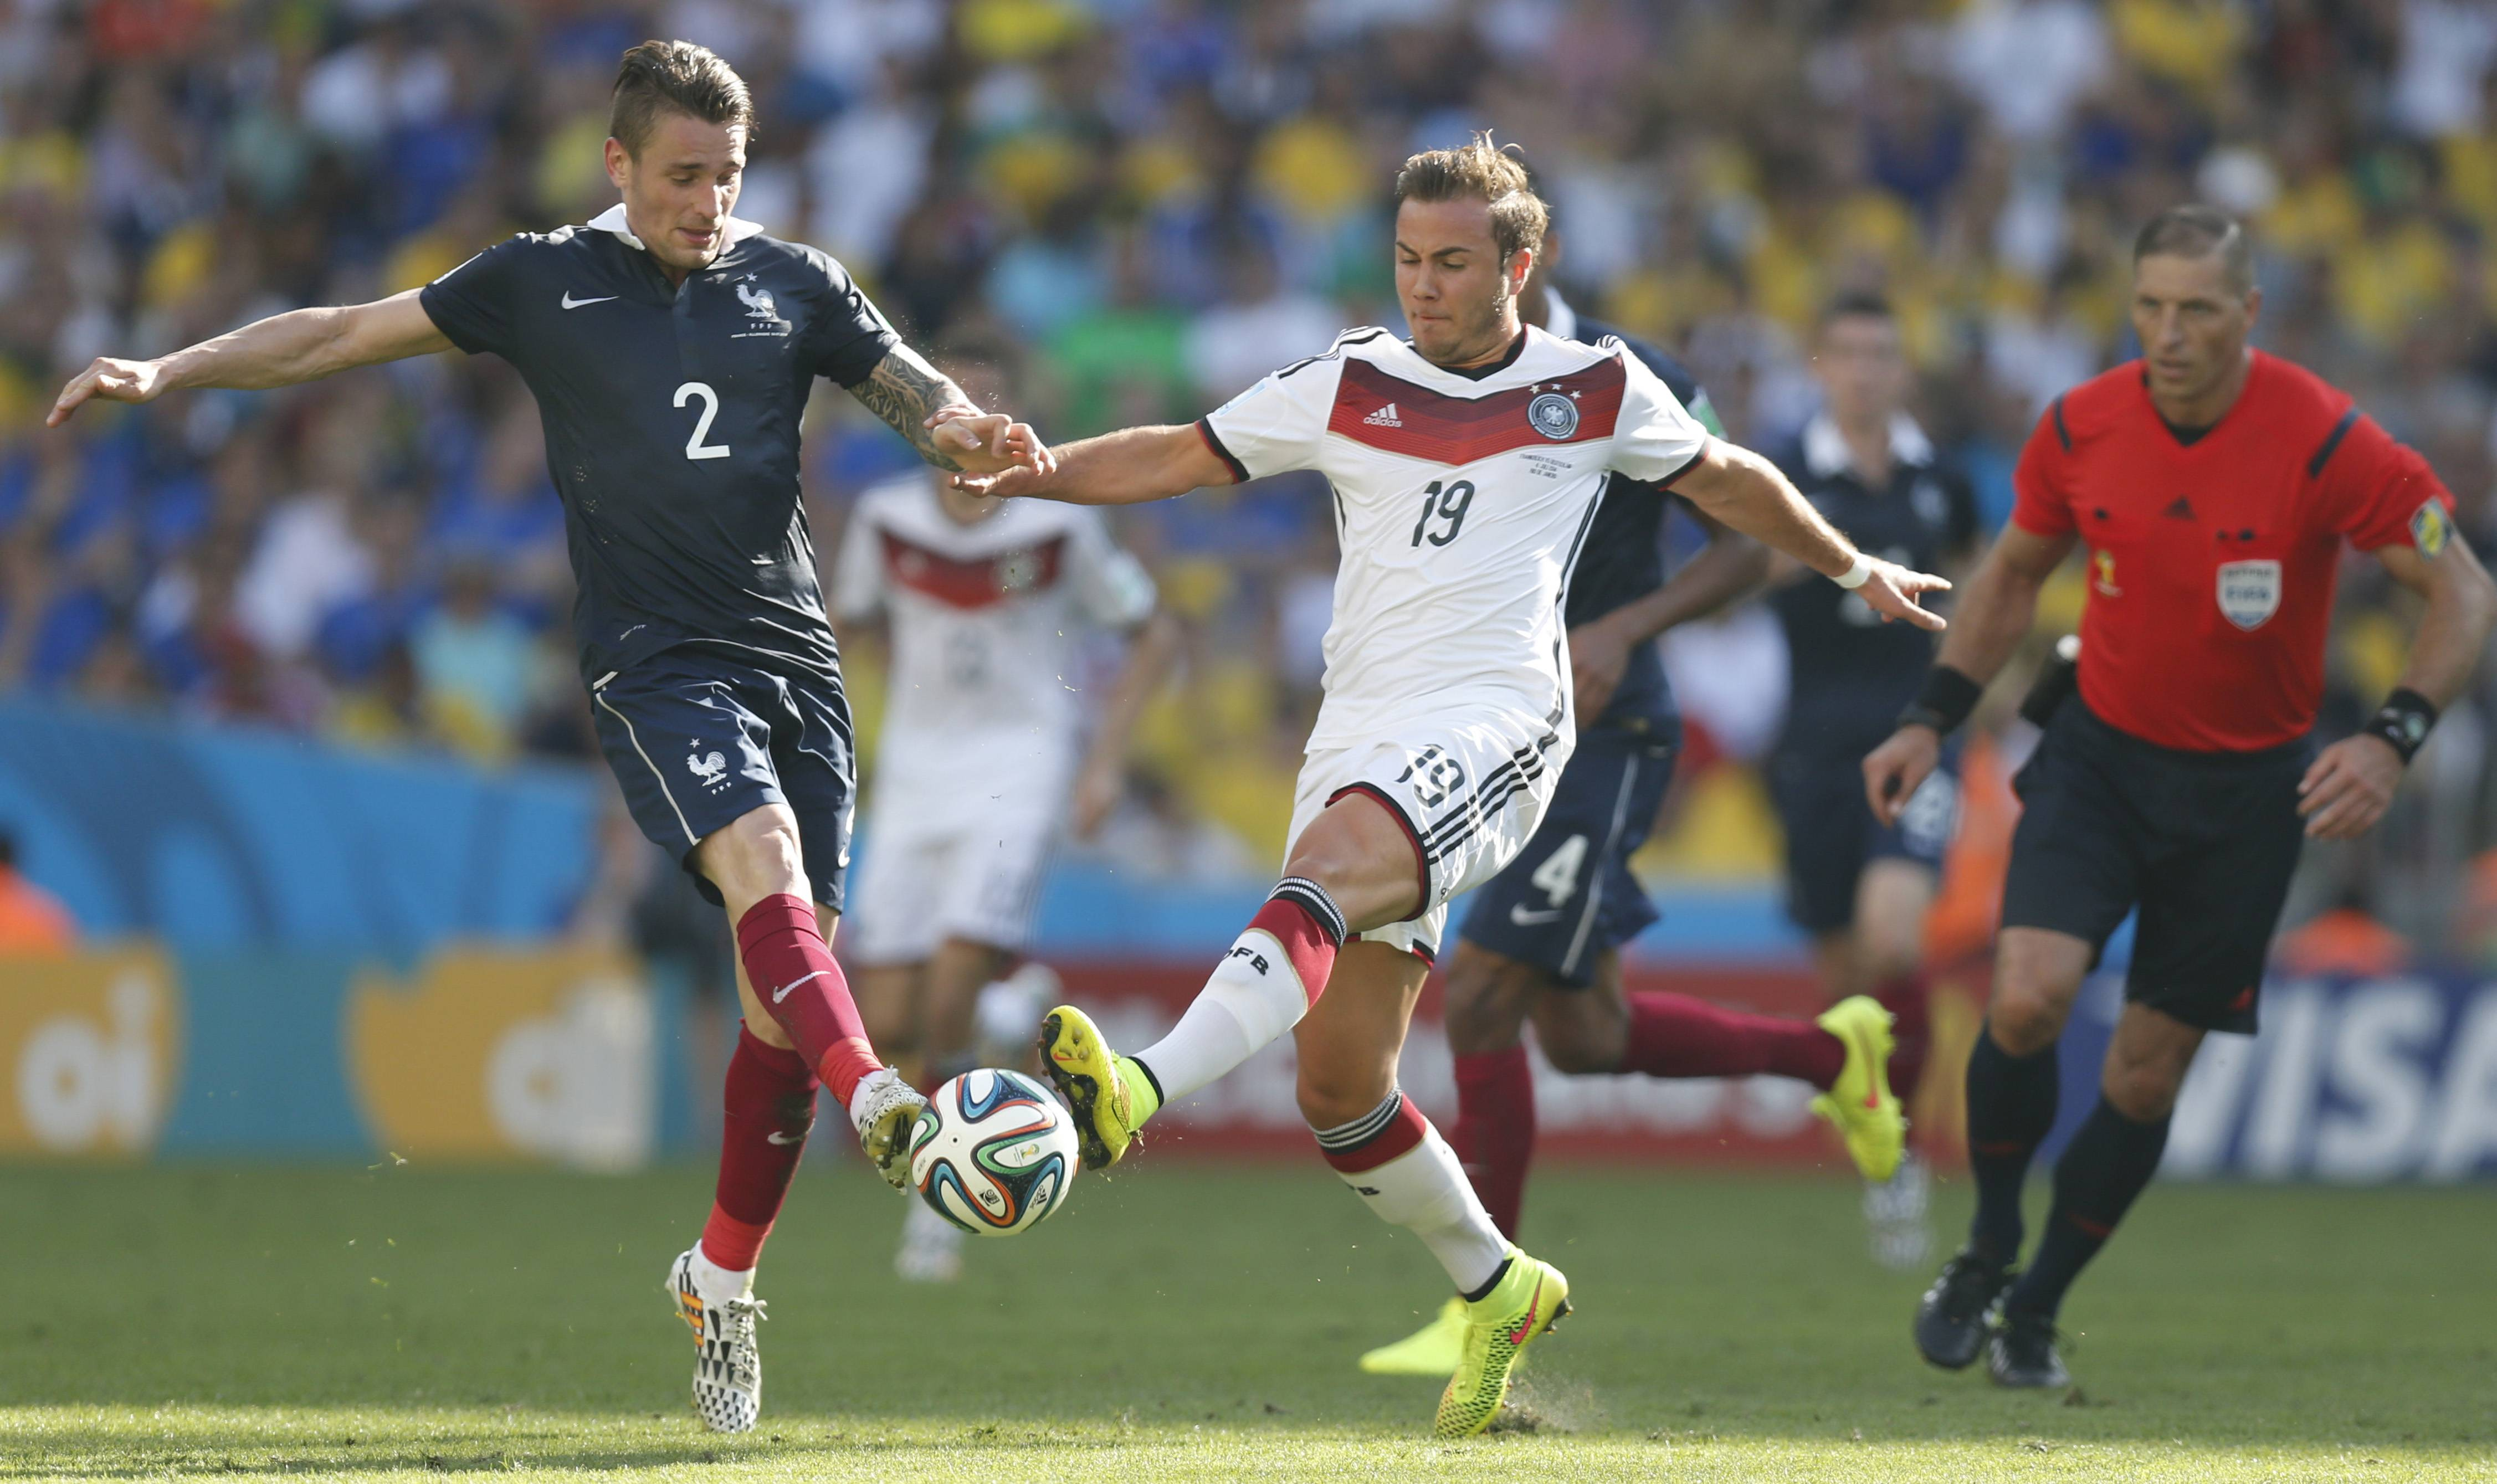 Germany's Mario Goetze and France's Mathieu Debuchy challenge for the ball during their World Cup quarterfinal match Friday at Maracana Stadium in Rio de Janeiro, Brazil.